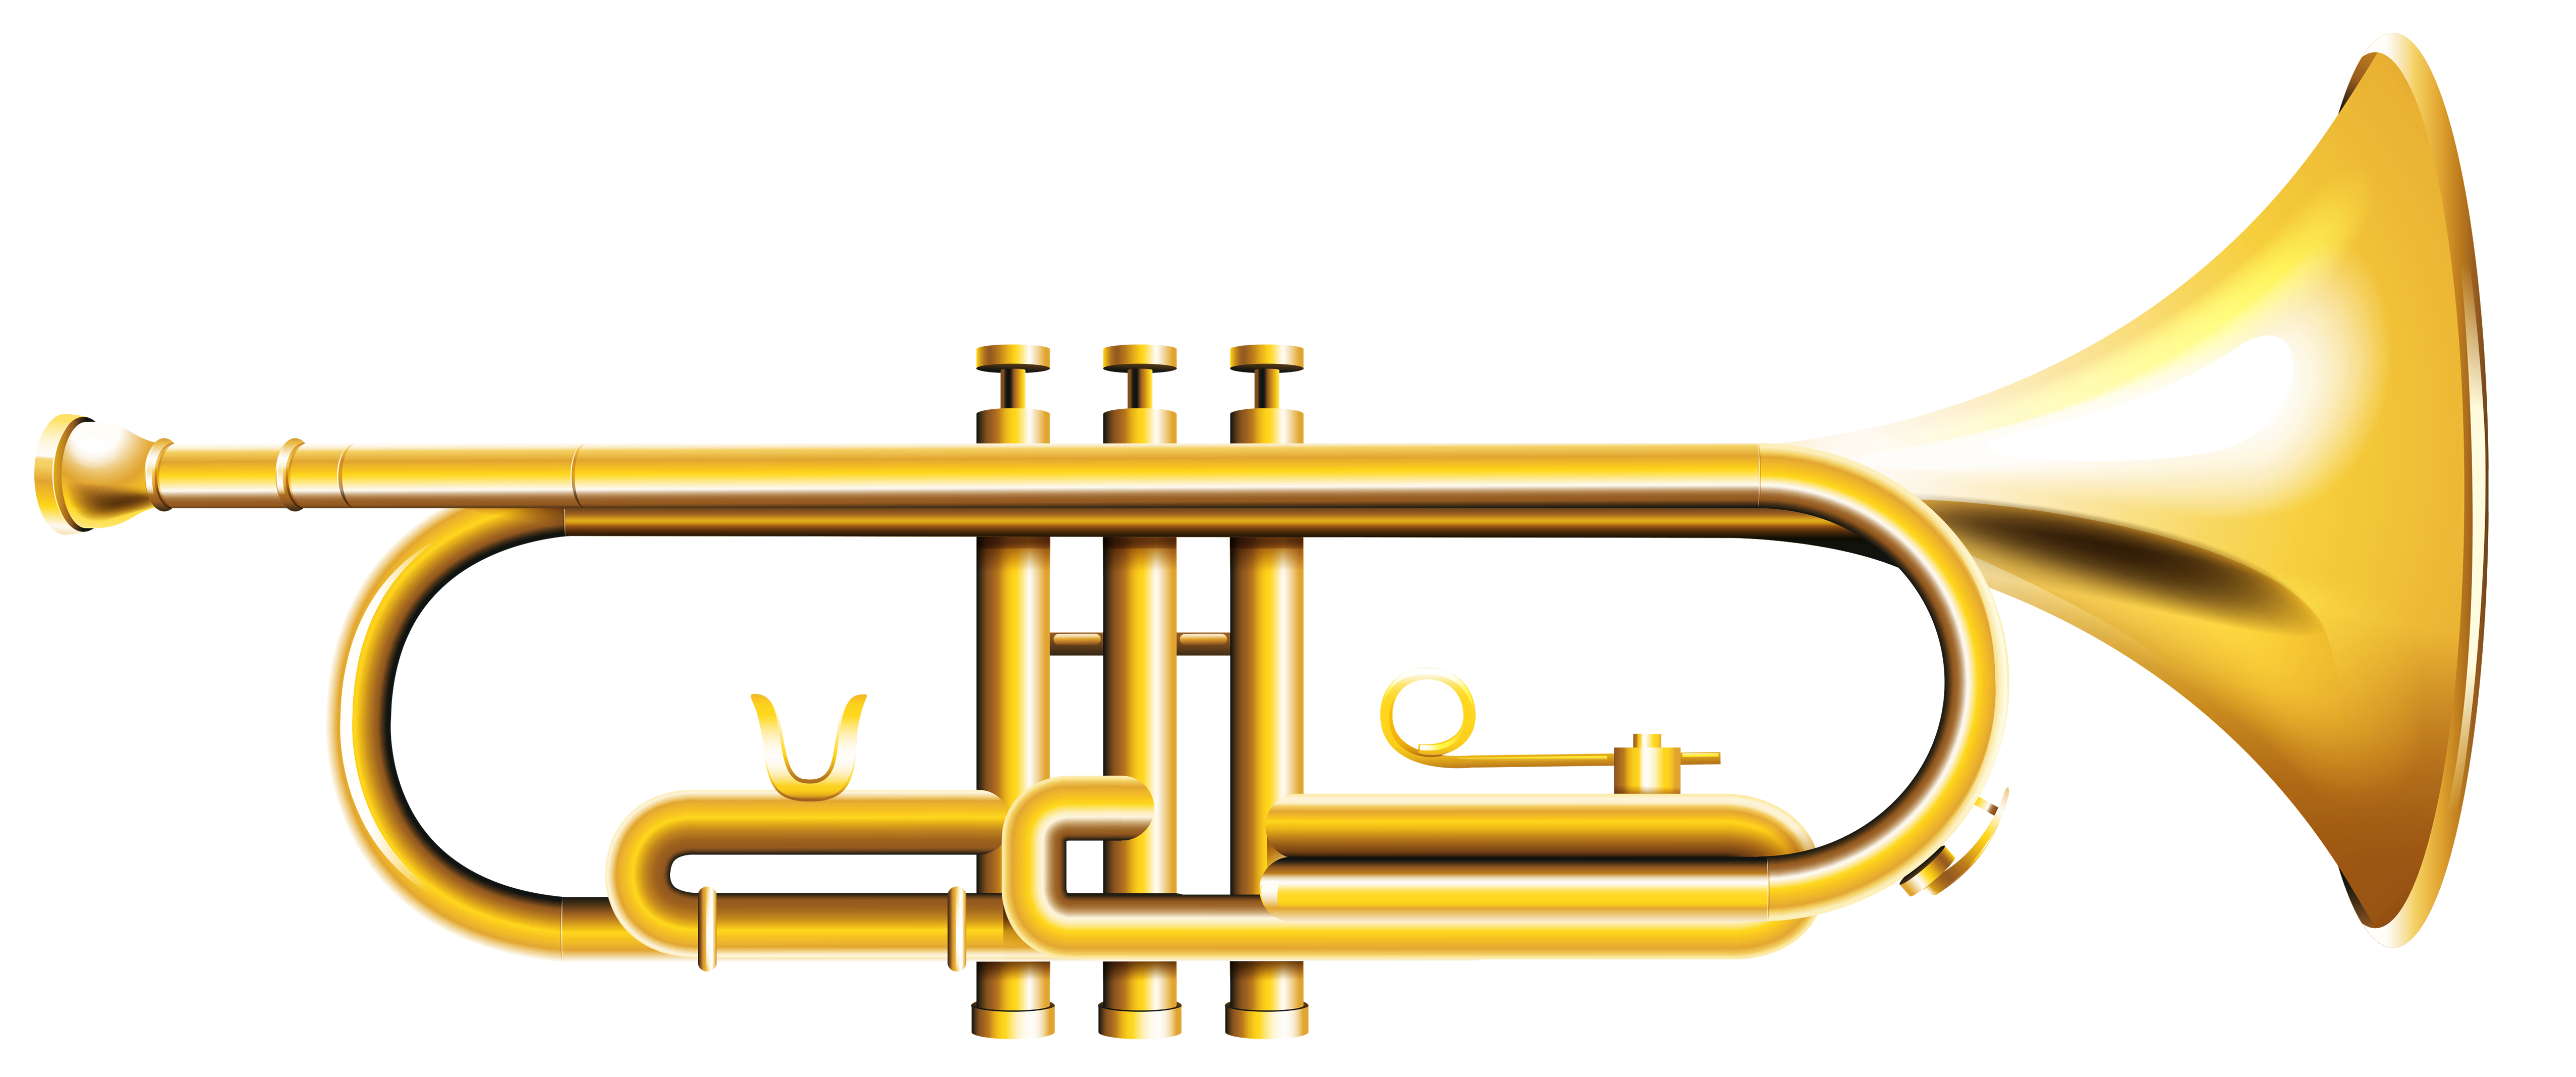 Transparent png gallery yopriceville. Trumpet clipart